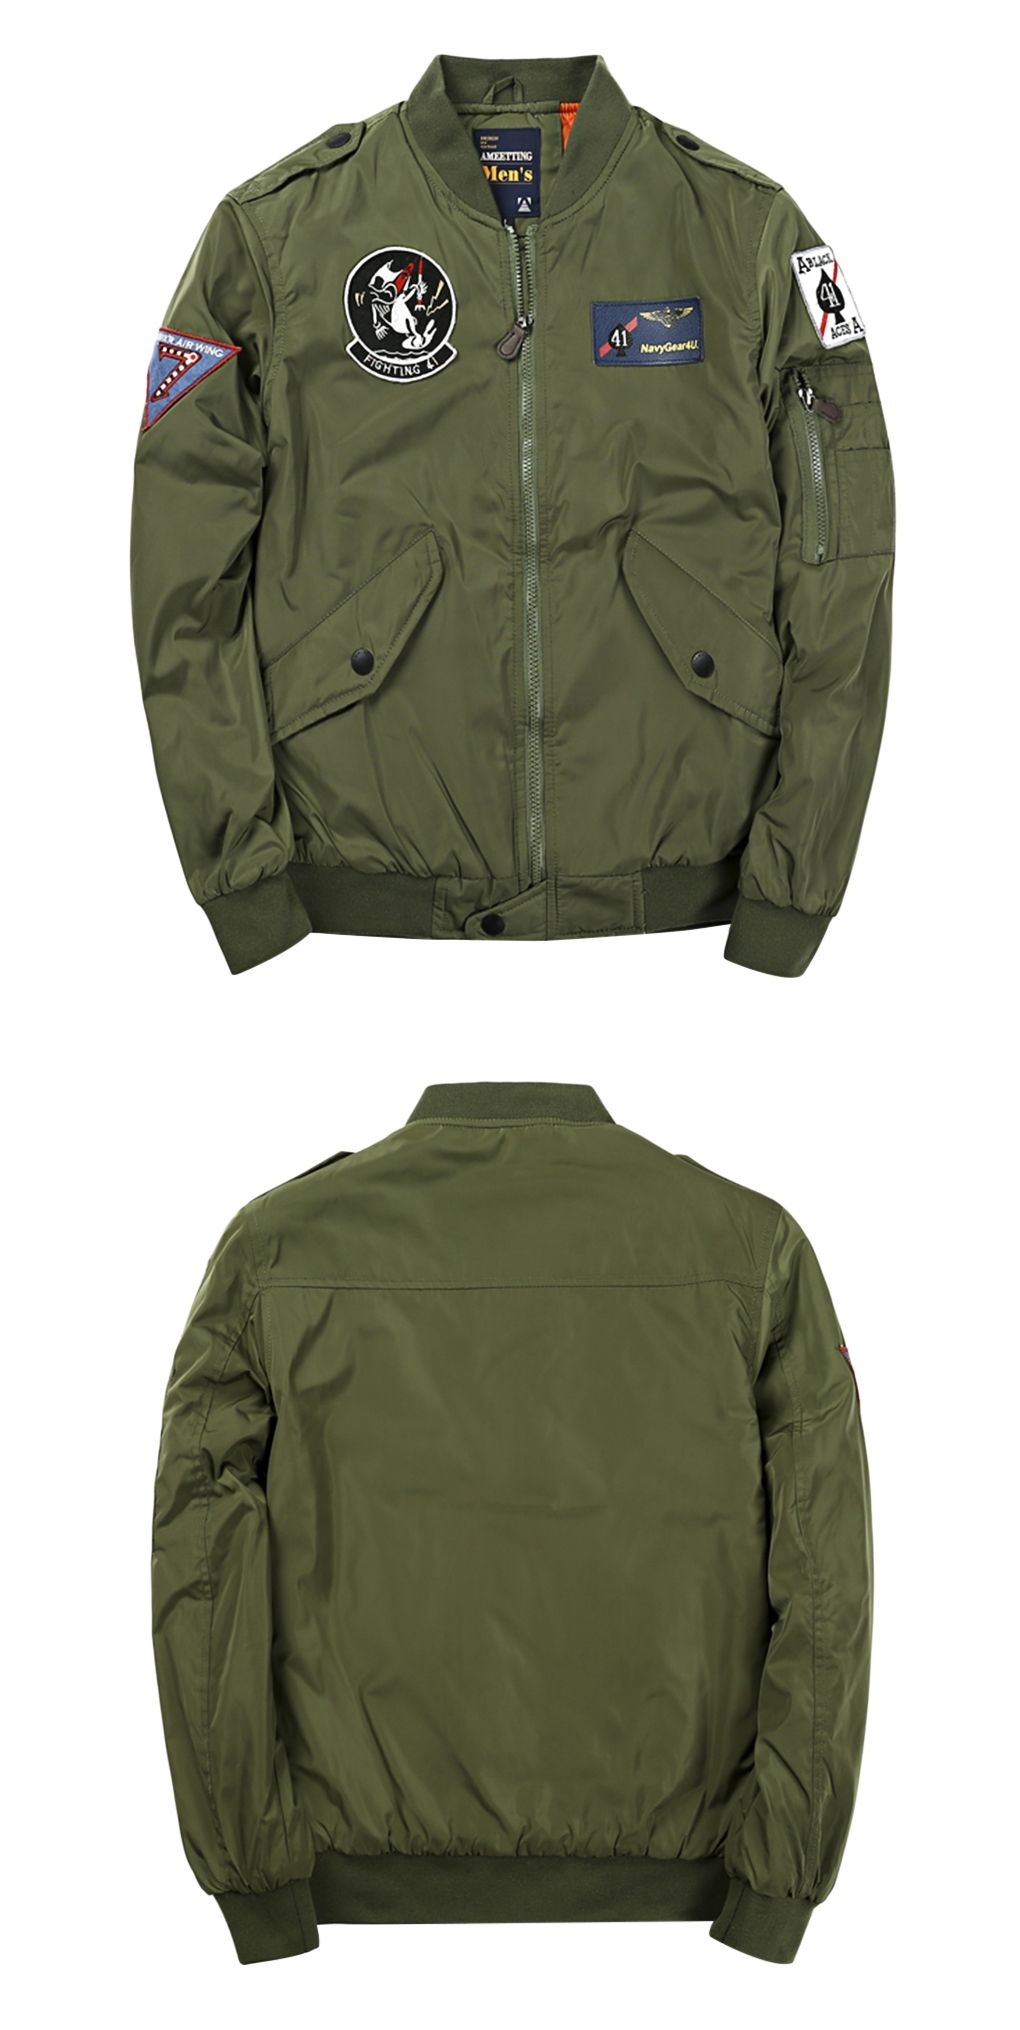 2da3a17624de0 Badge Patched Zip Up Bomber Jacket - Army Green L